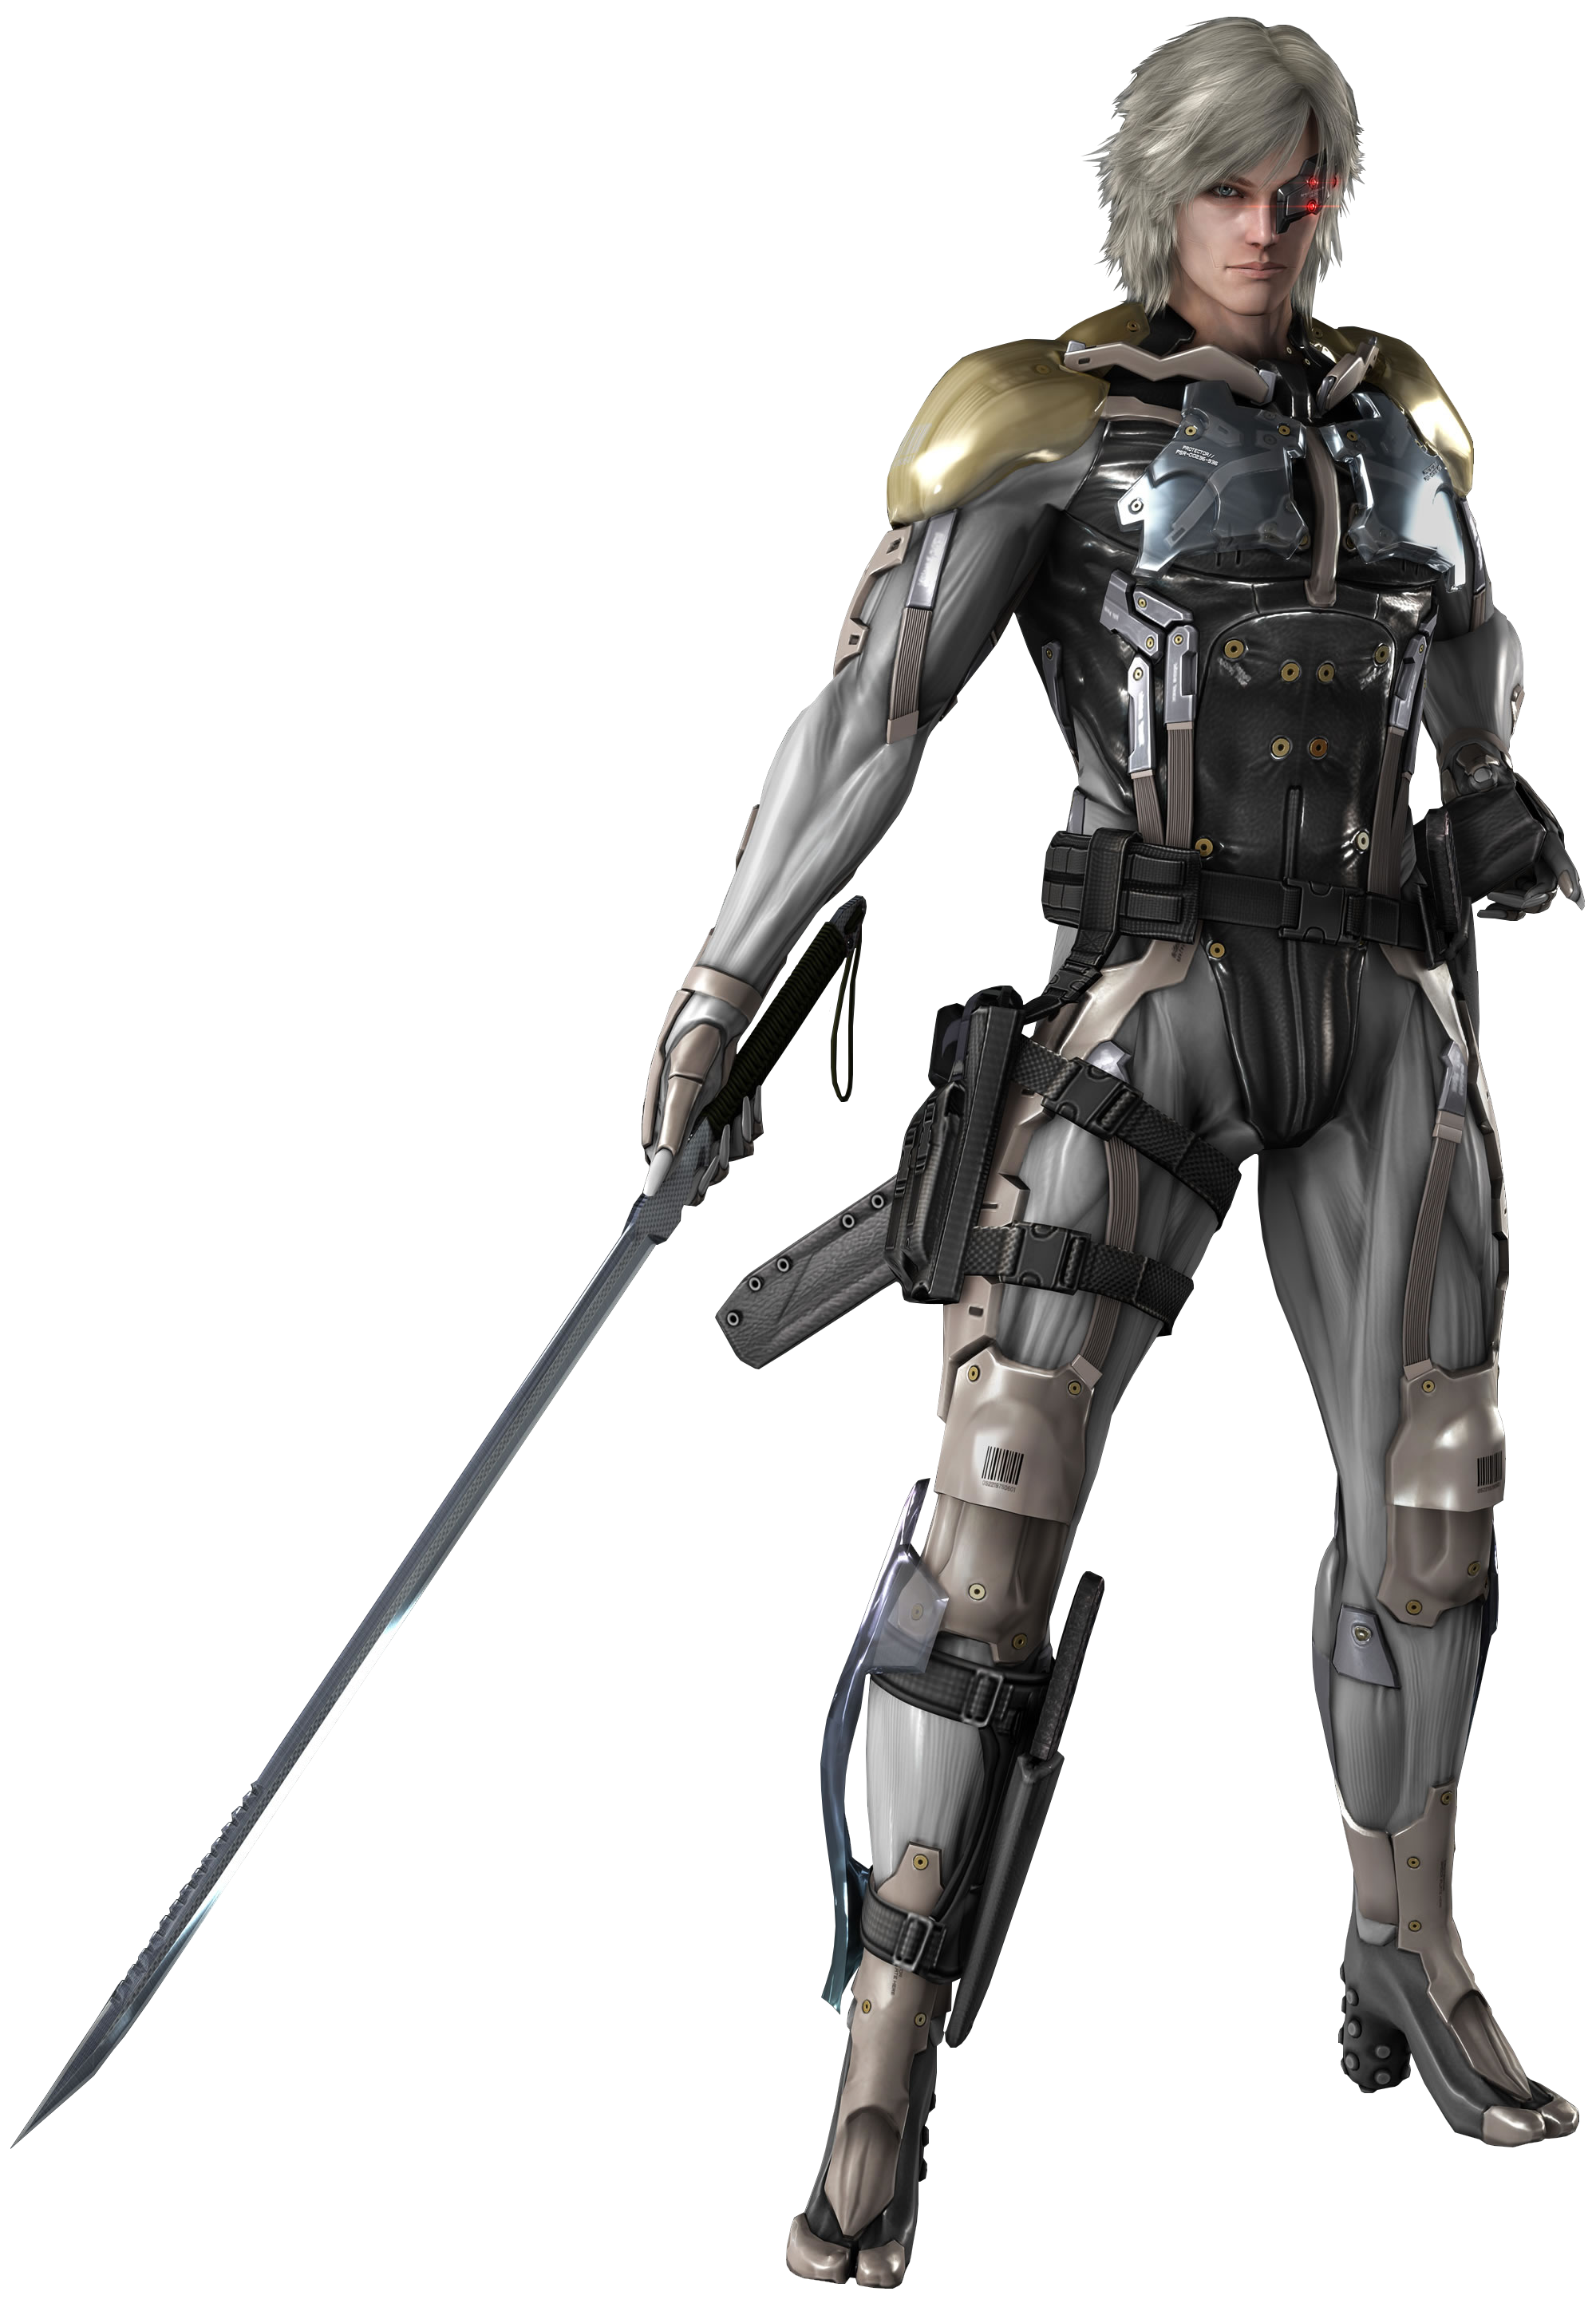 Metal Gear Rising Revengeance - Raiden render by Corvasce1982